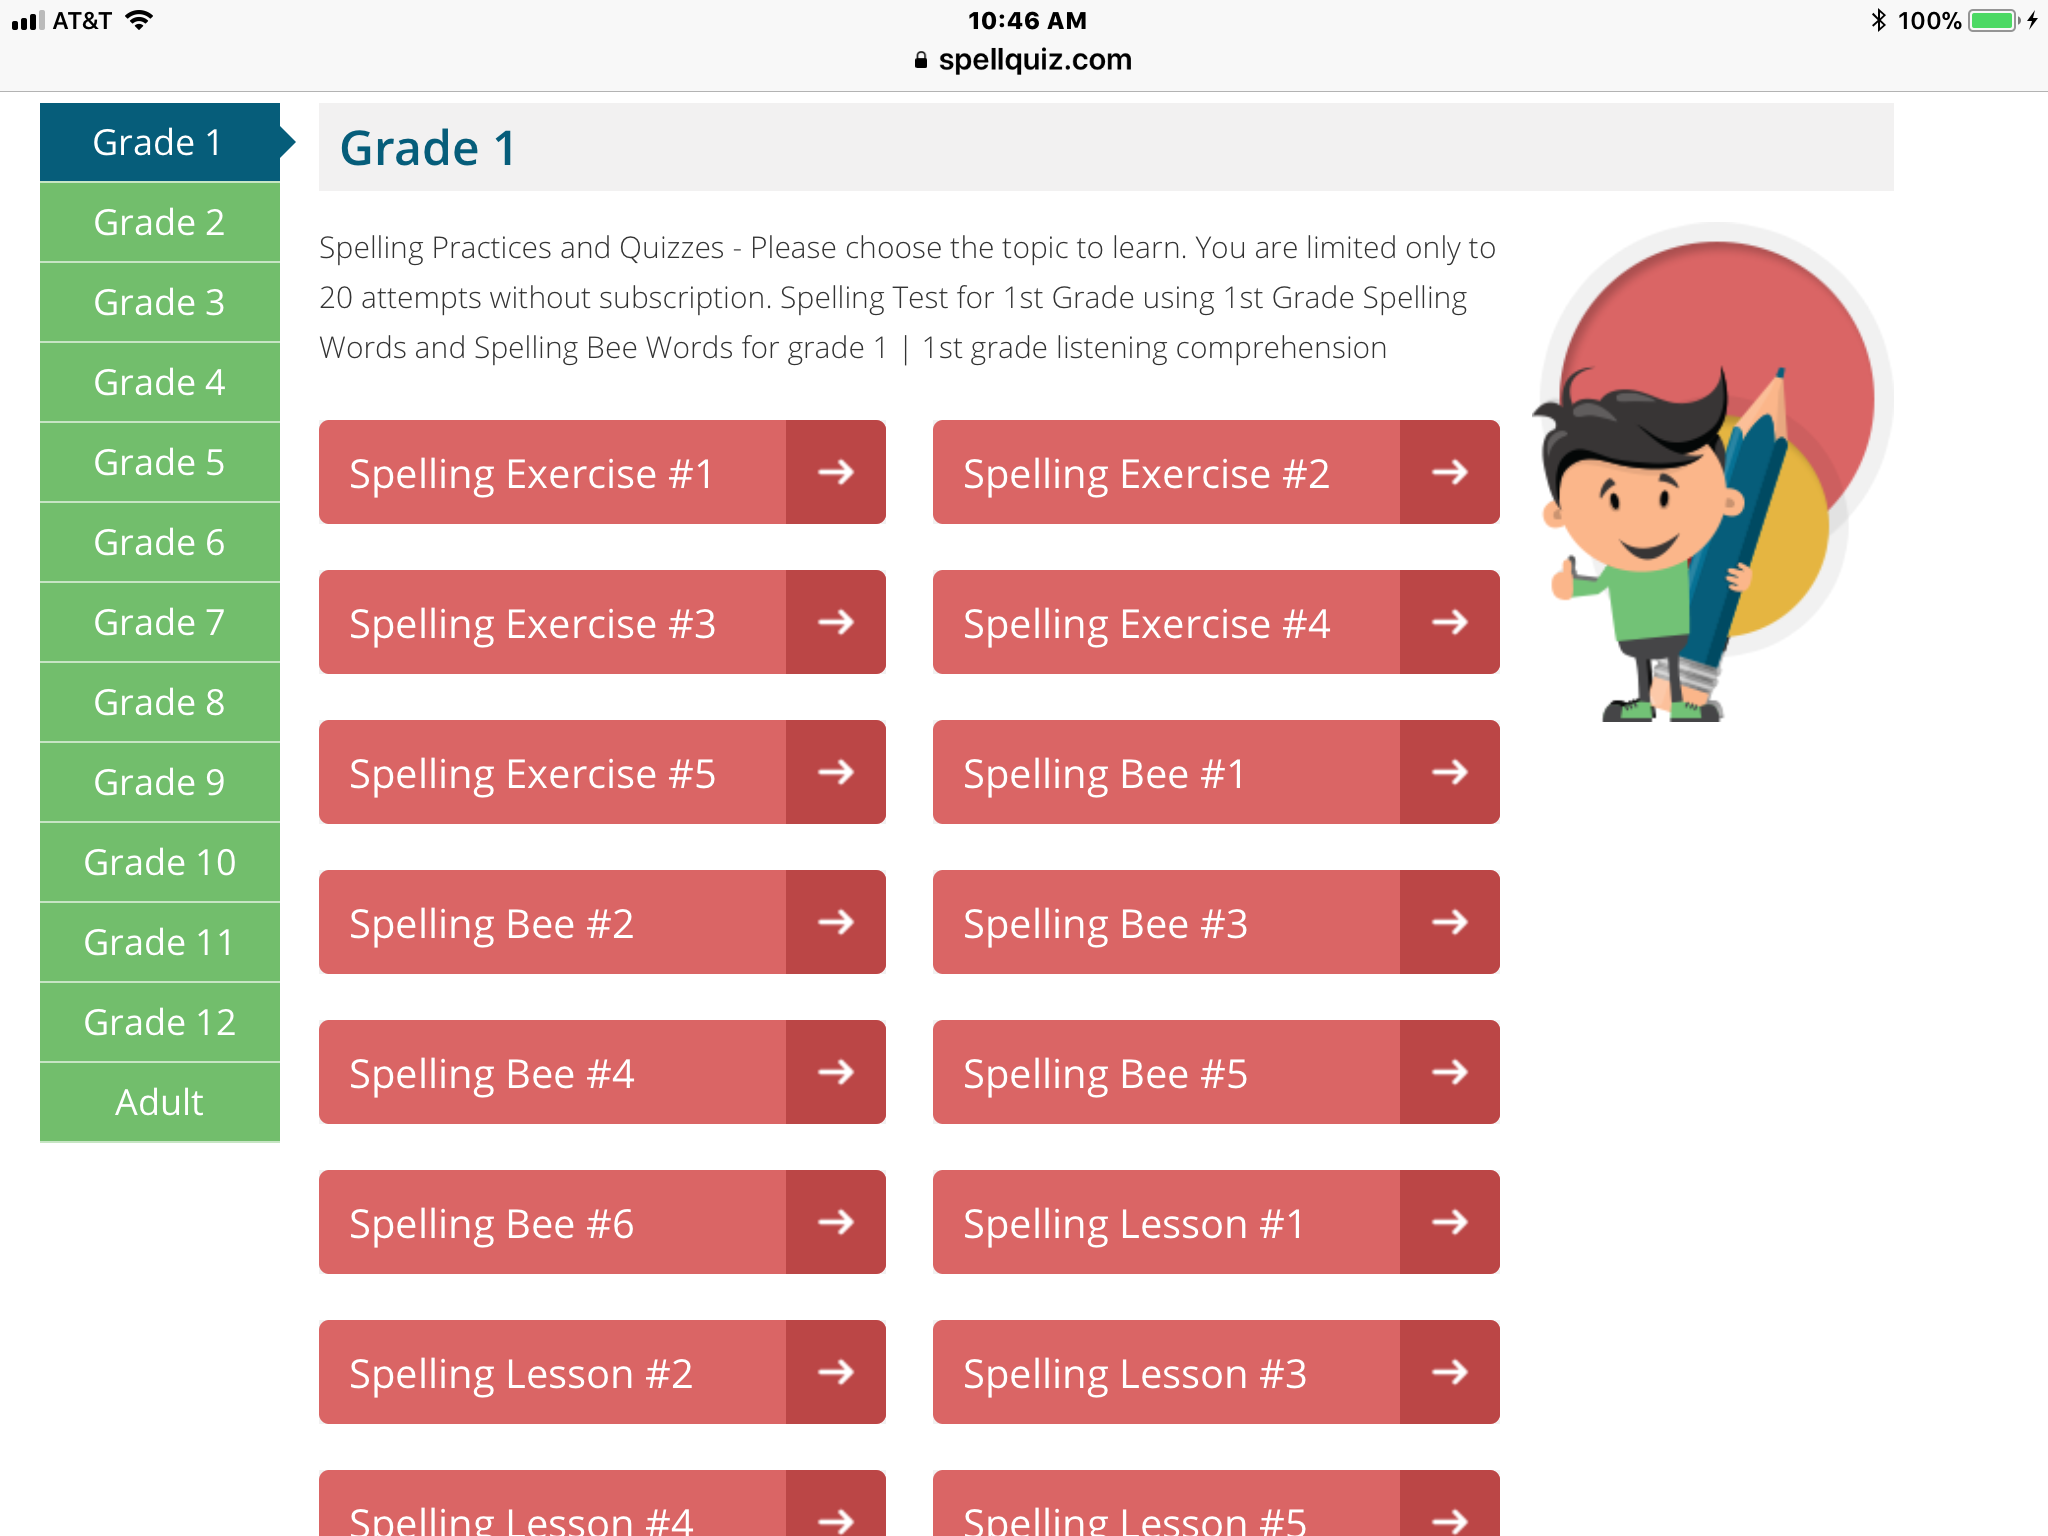 Screenshot of SpellQuiz website displaying the Grades listed in the left column and Grade 1 activity options of